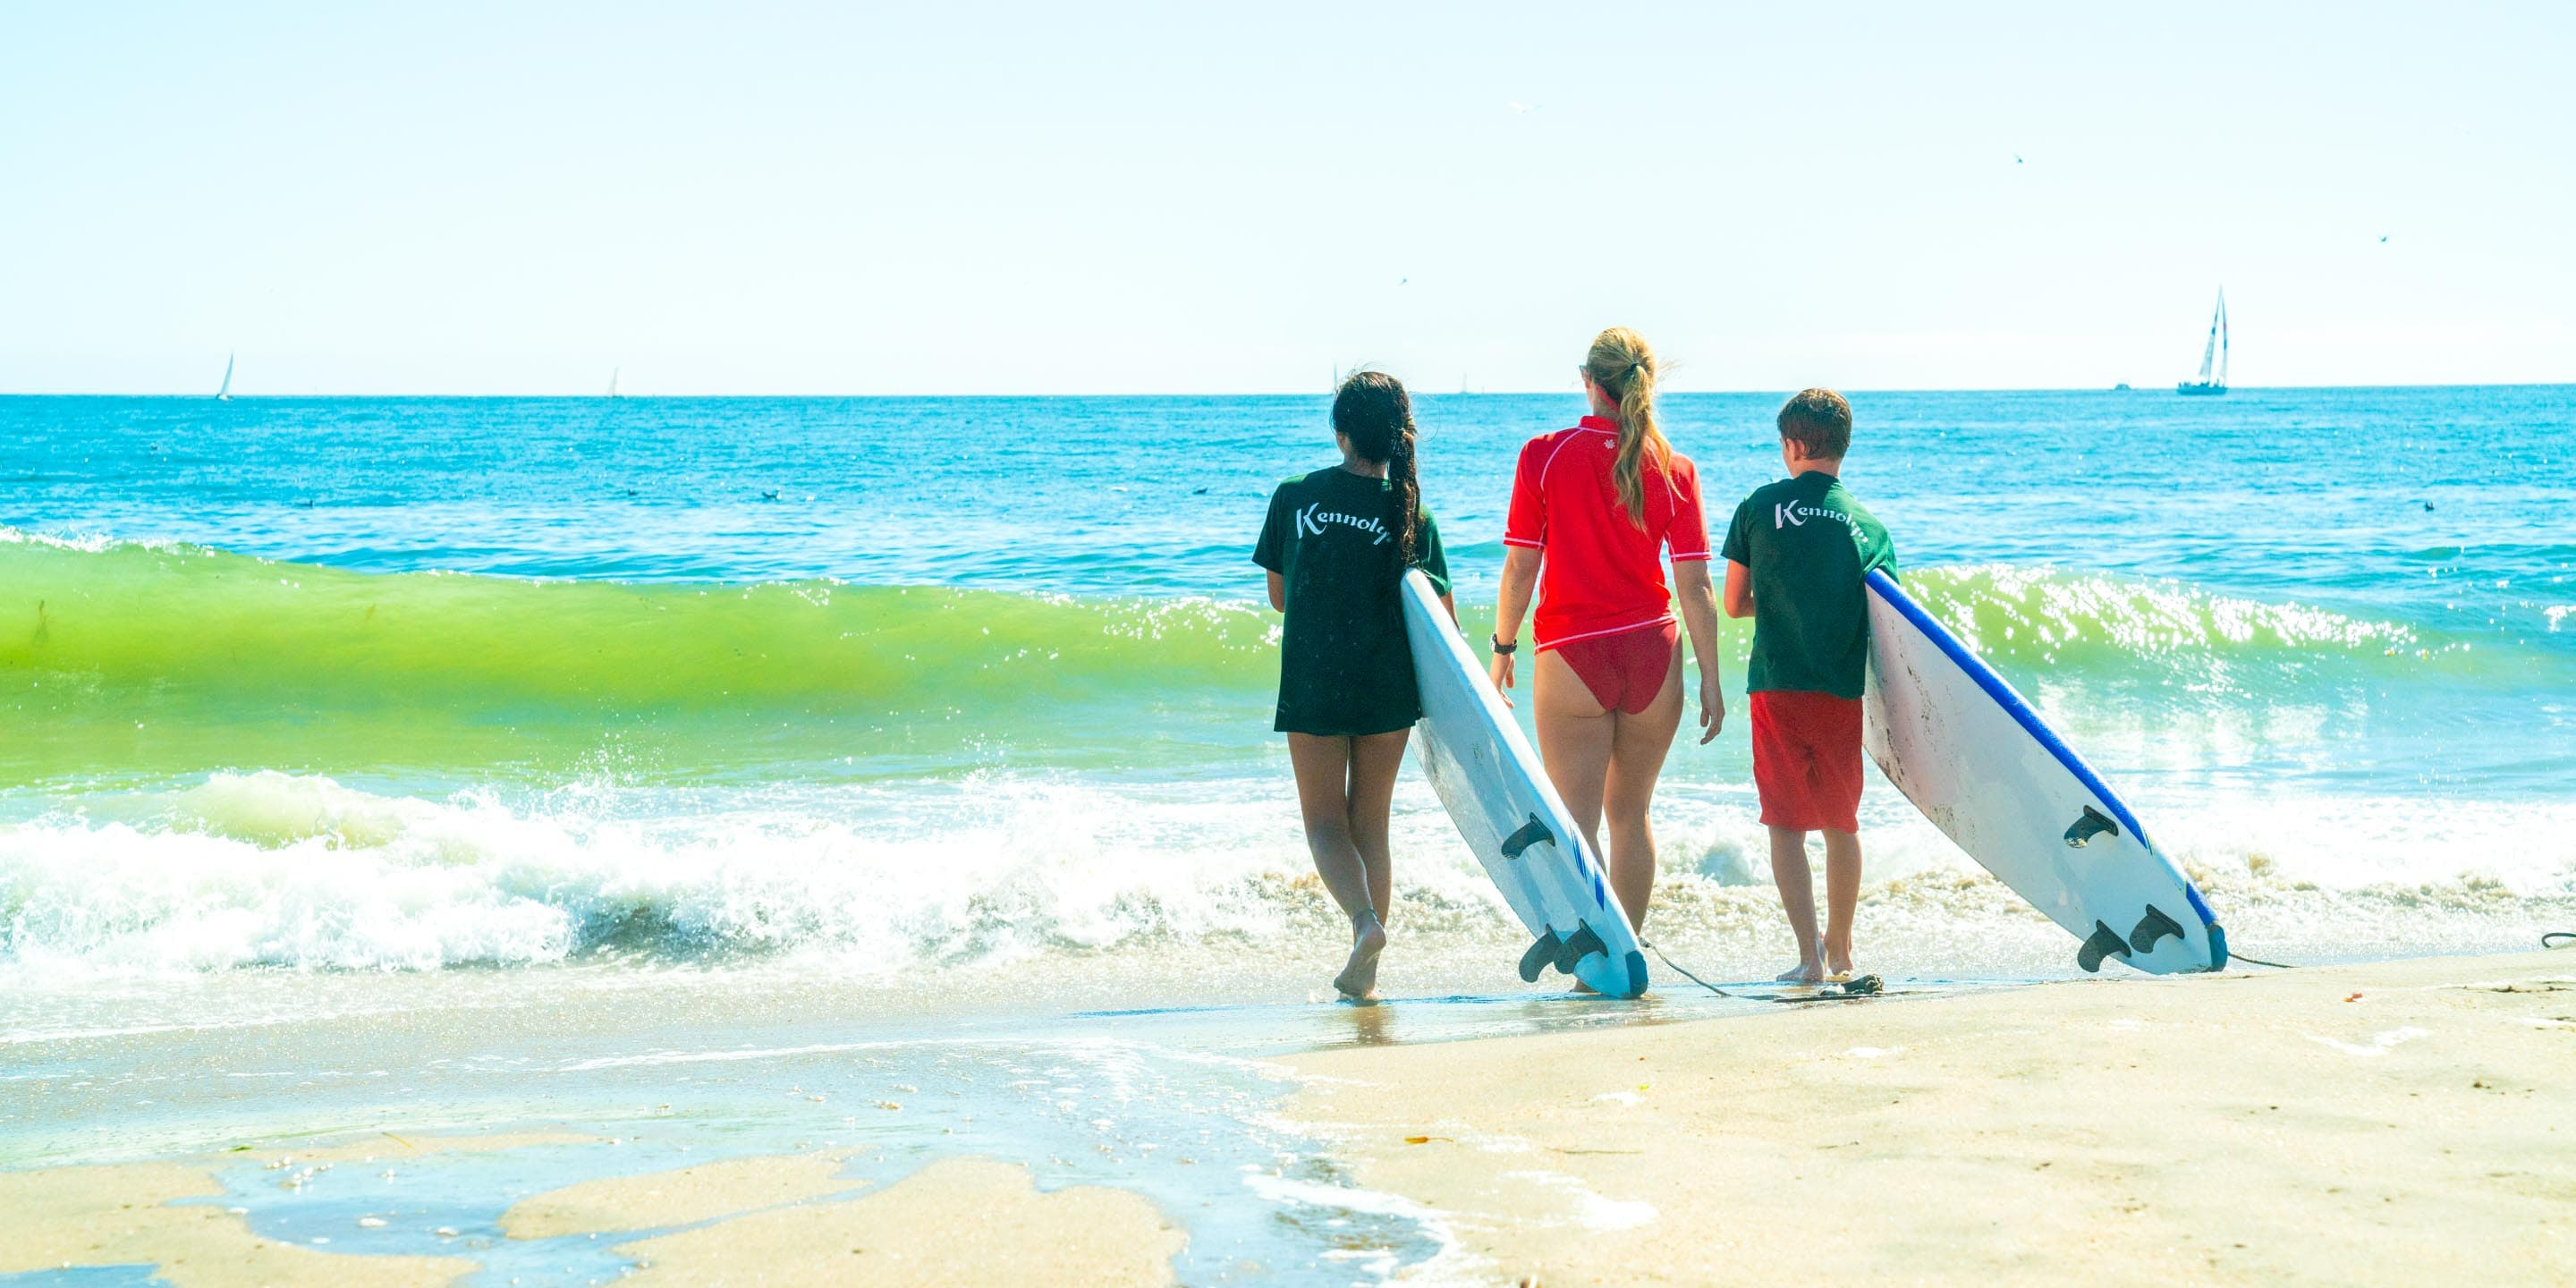 Counselor and campers walk down beach with surfboards